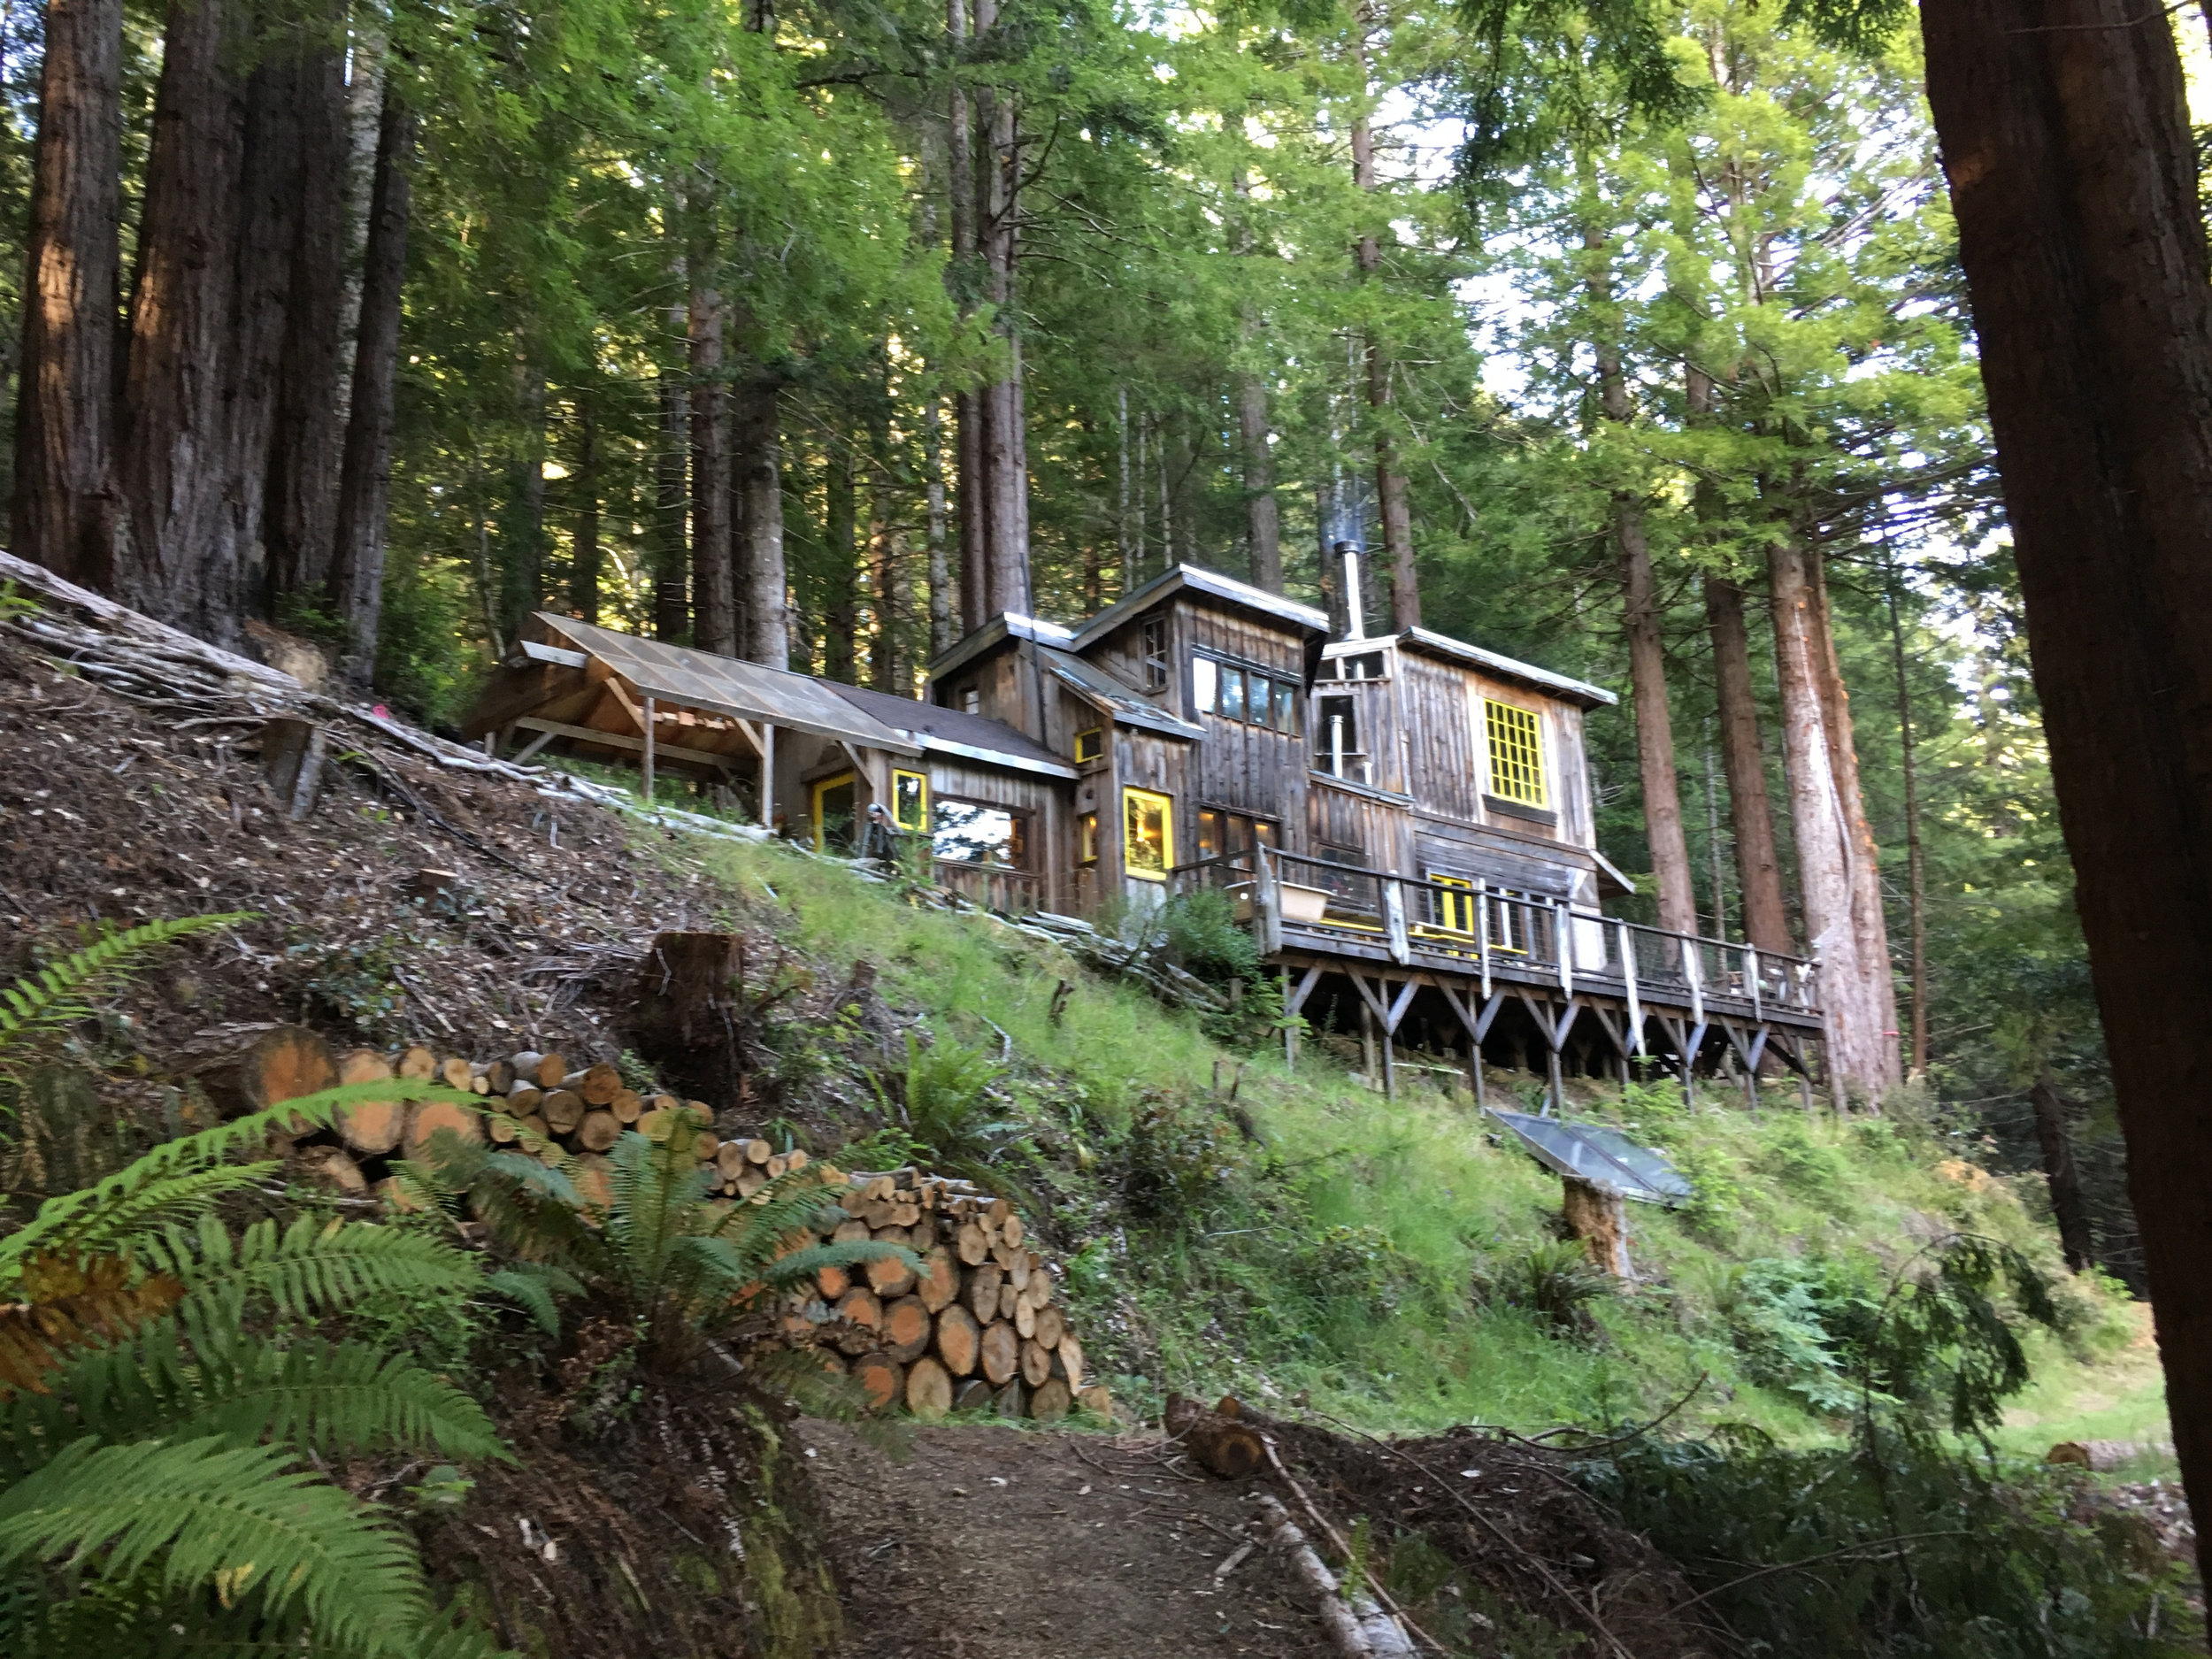 Dawn Cabin, Salmon Creek Farm, June 2018.